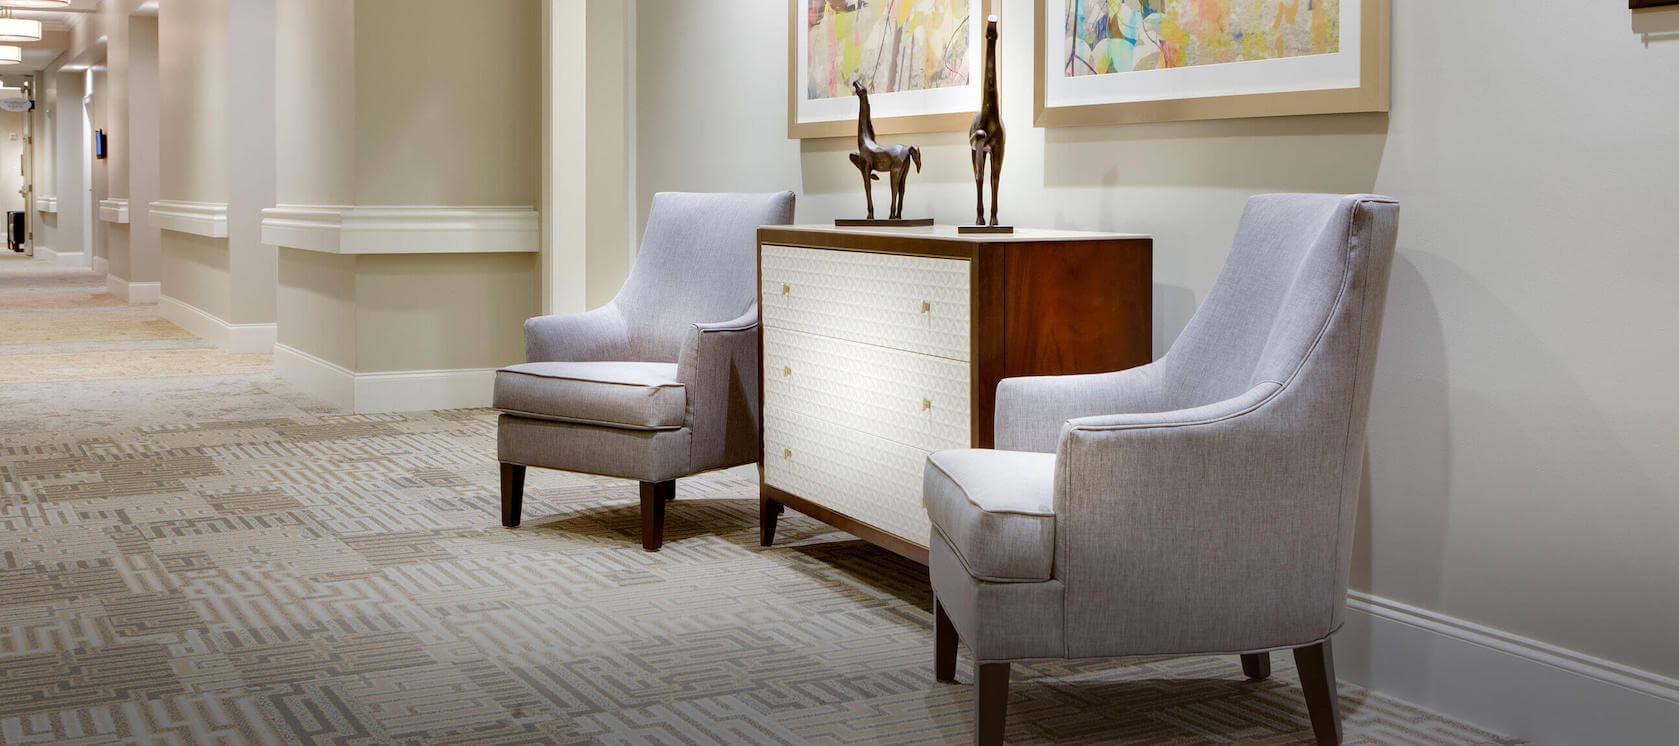 Enduring Sophistication 2 chairs in hallway